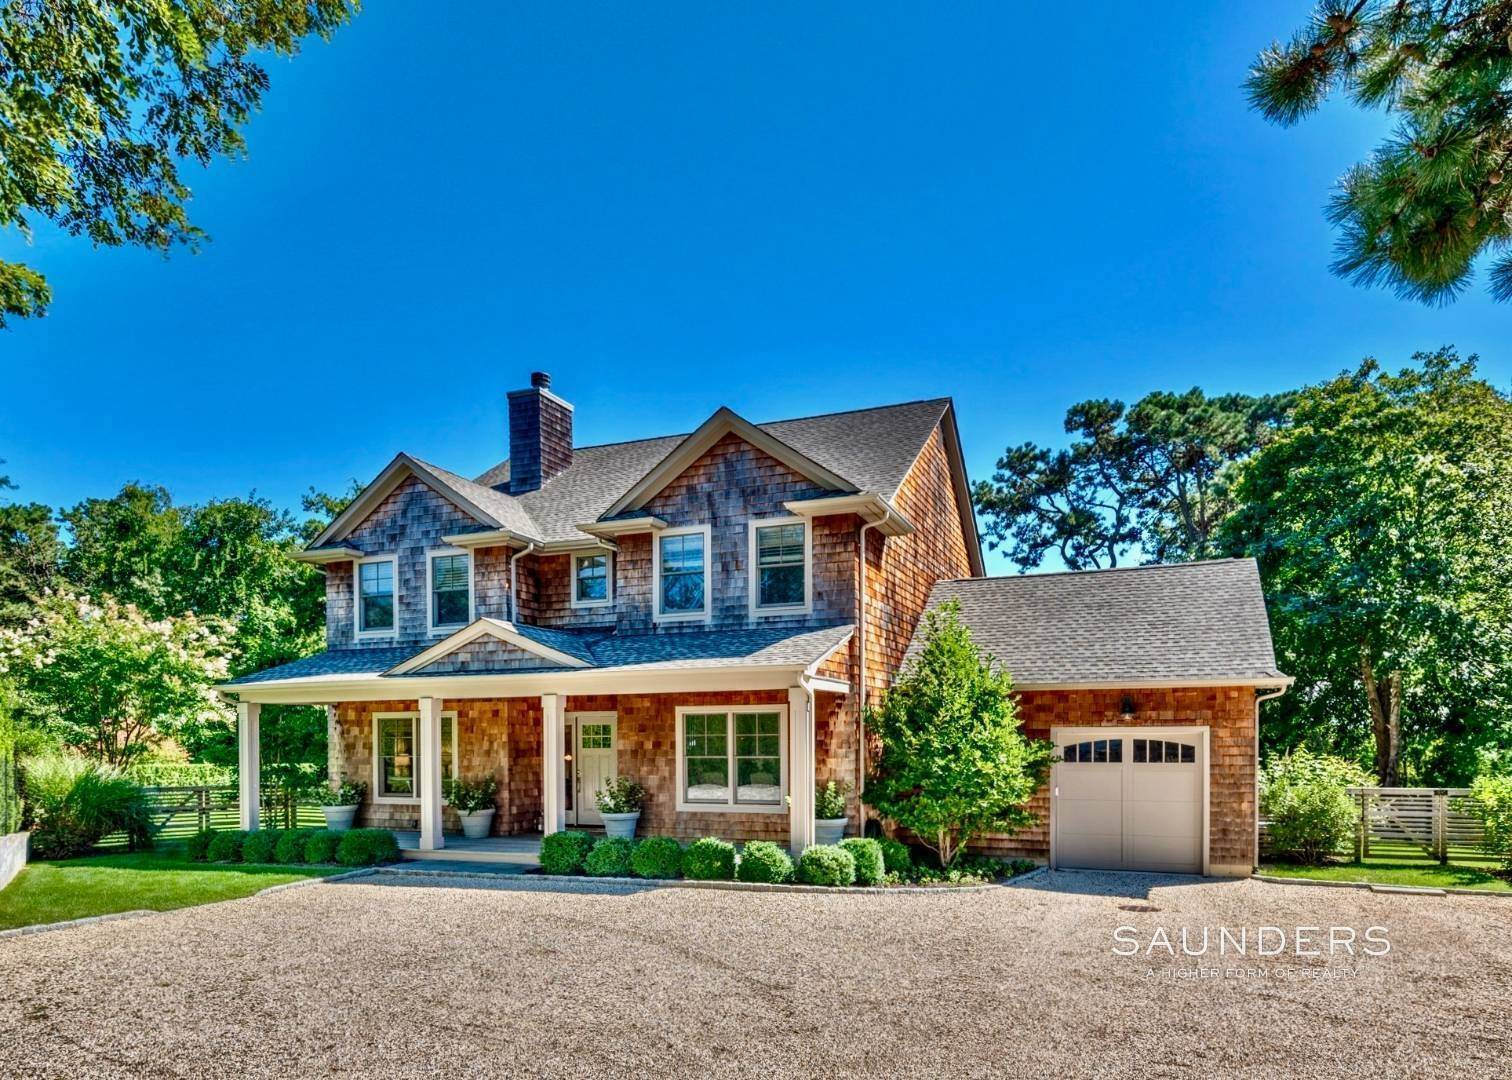 Single Family Homes for Sale at Southampton - South Of The Highway 276 Montauk Highway, Southampton, Southampton Town, NY 11968